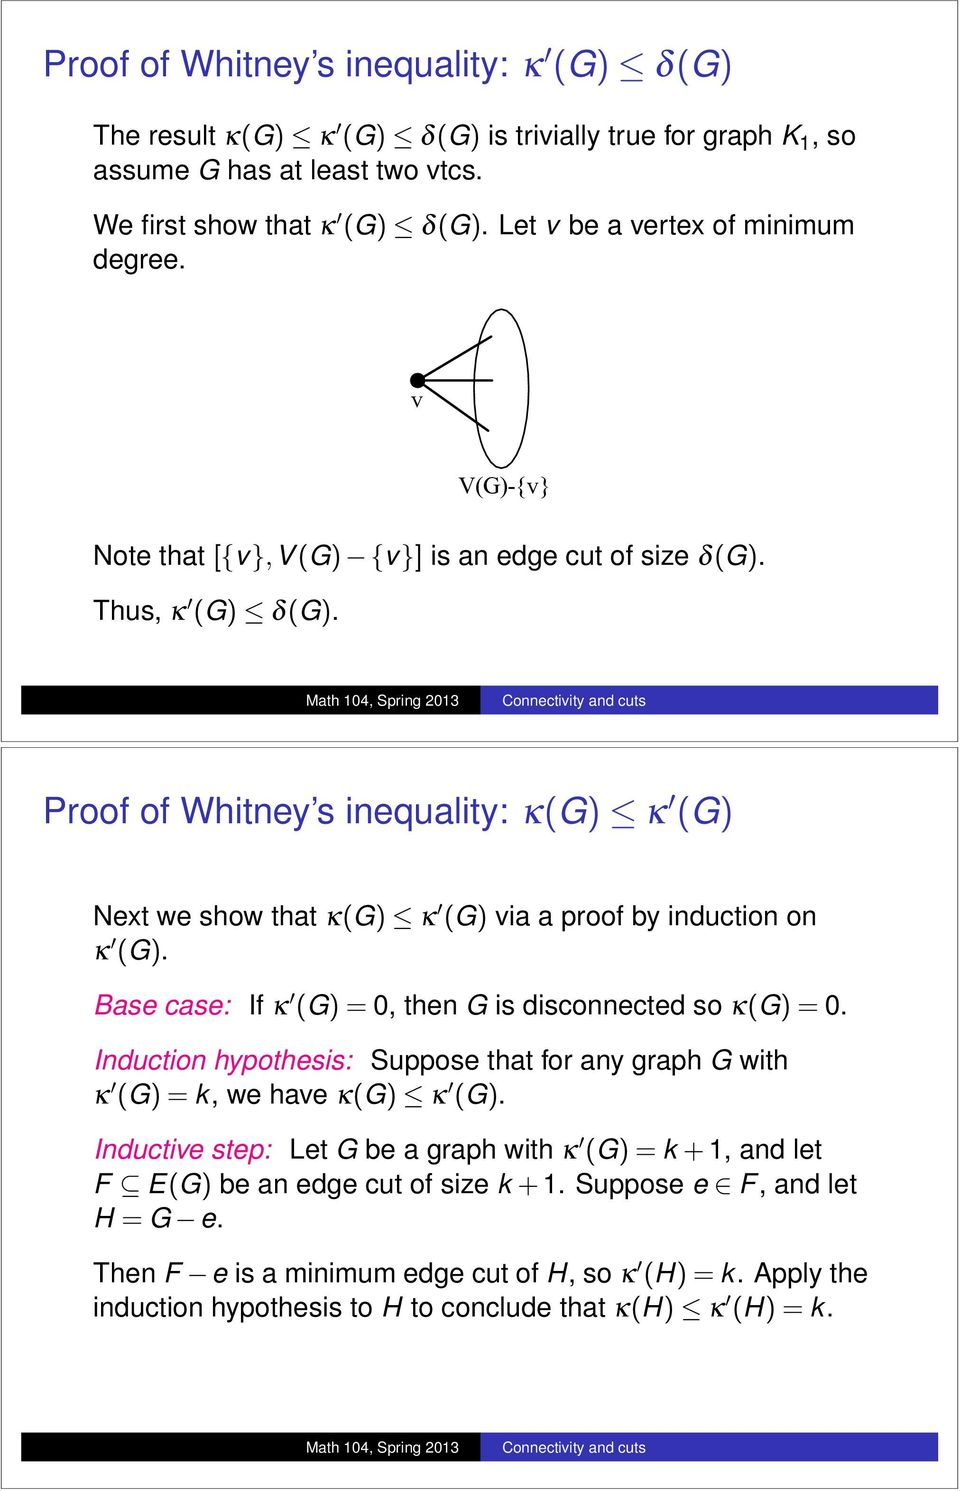 Proof of Whitney s inequality: k(g) apple k 0 (G) Next we show that k(g) apple k 0 (G) via a proof by induction on k 0 (G). Base case: If k 0 (G)=0, then G is disconnected so k(g)=0.